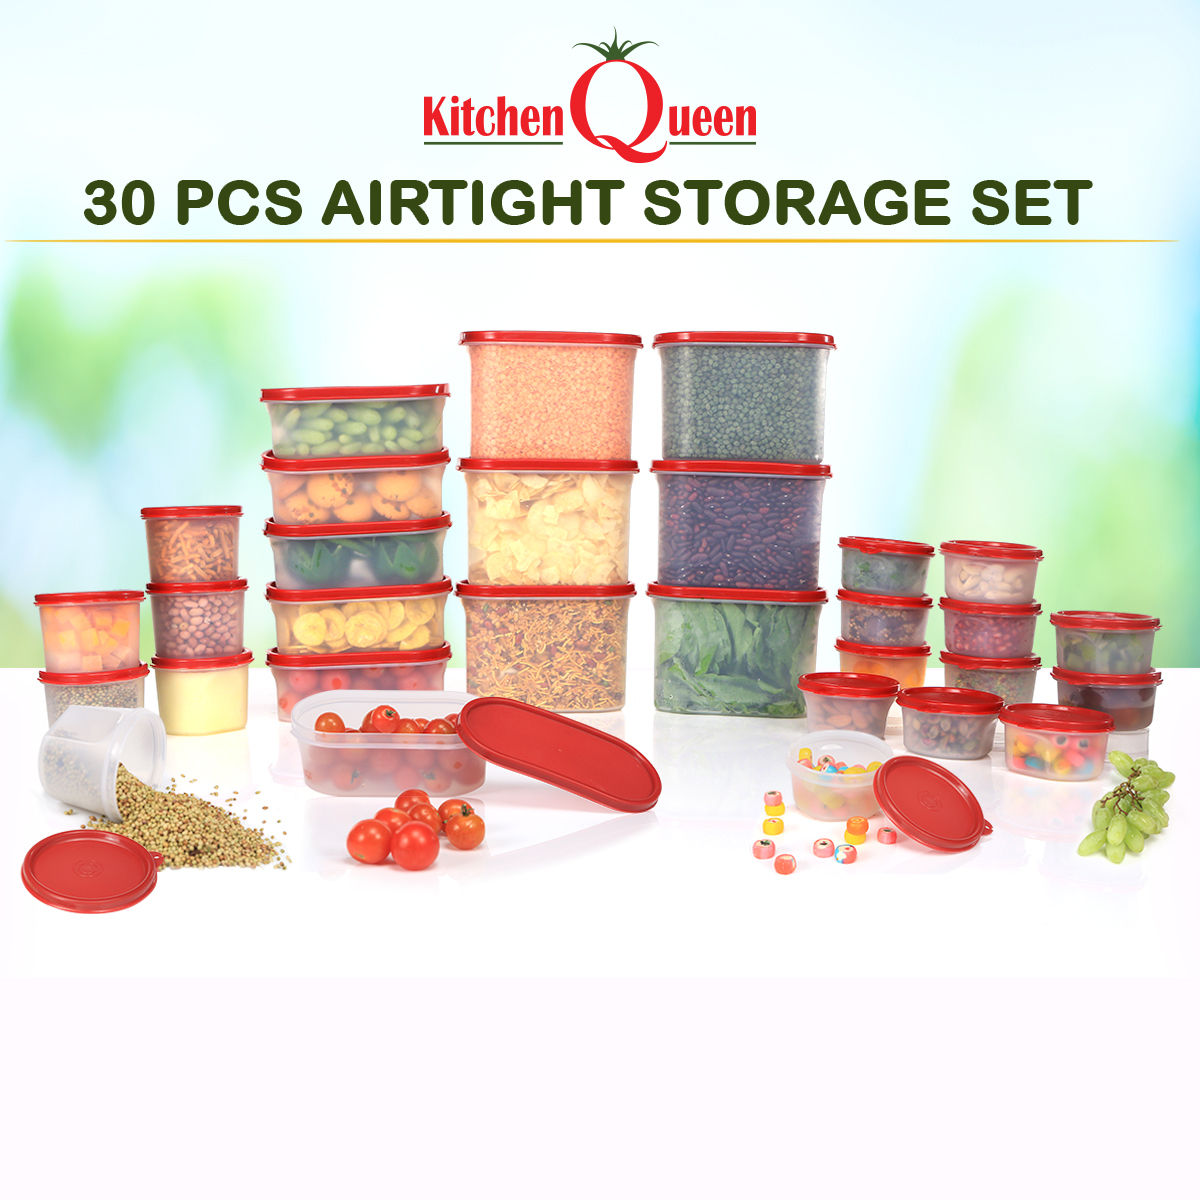 Buy 30 Pcs Airtight Storage Set Online At Best Price In India On